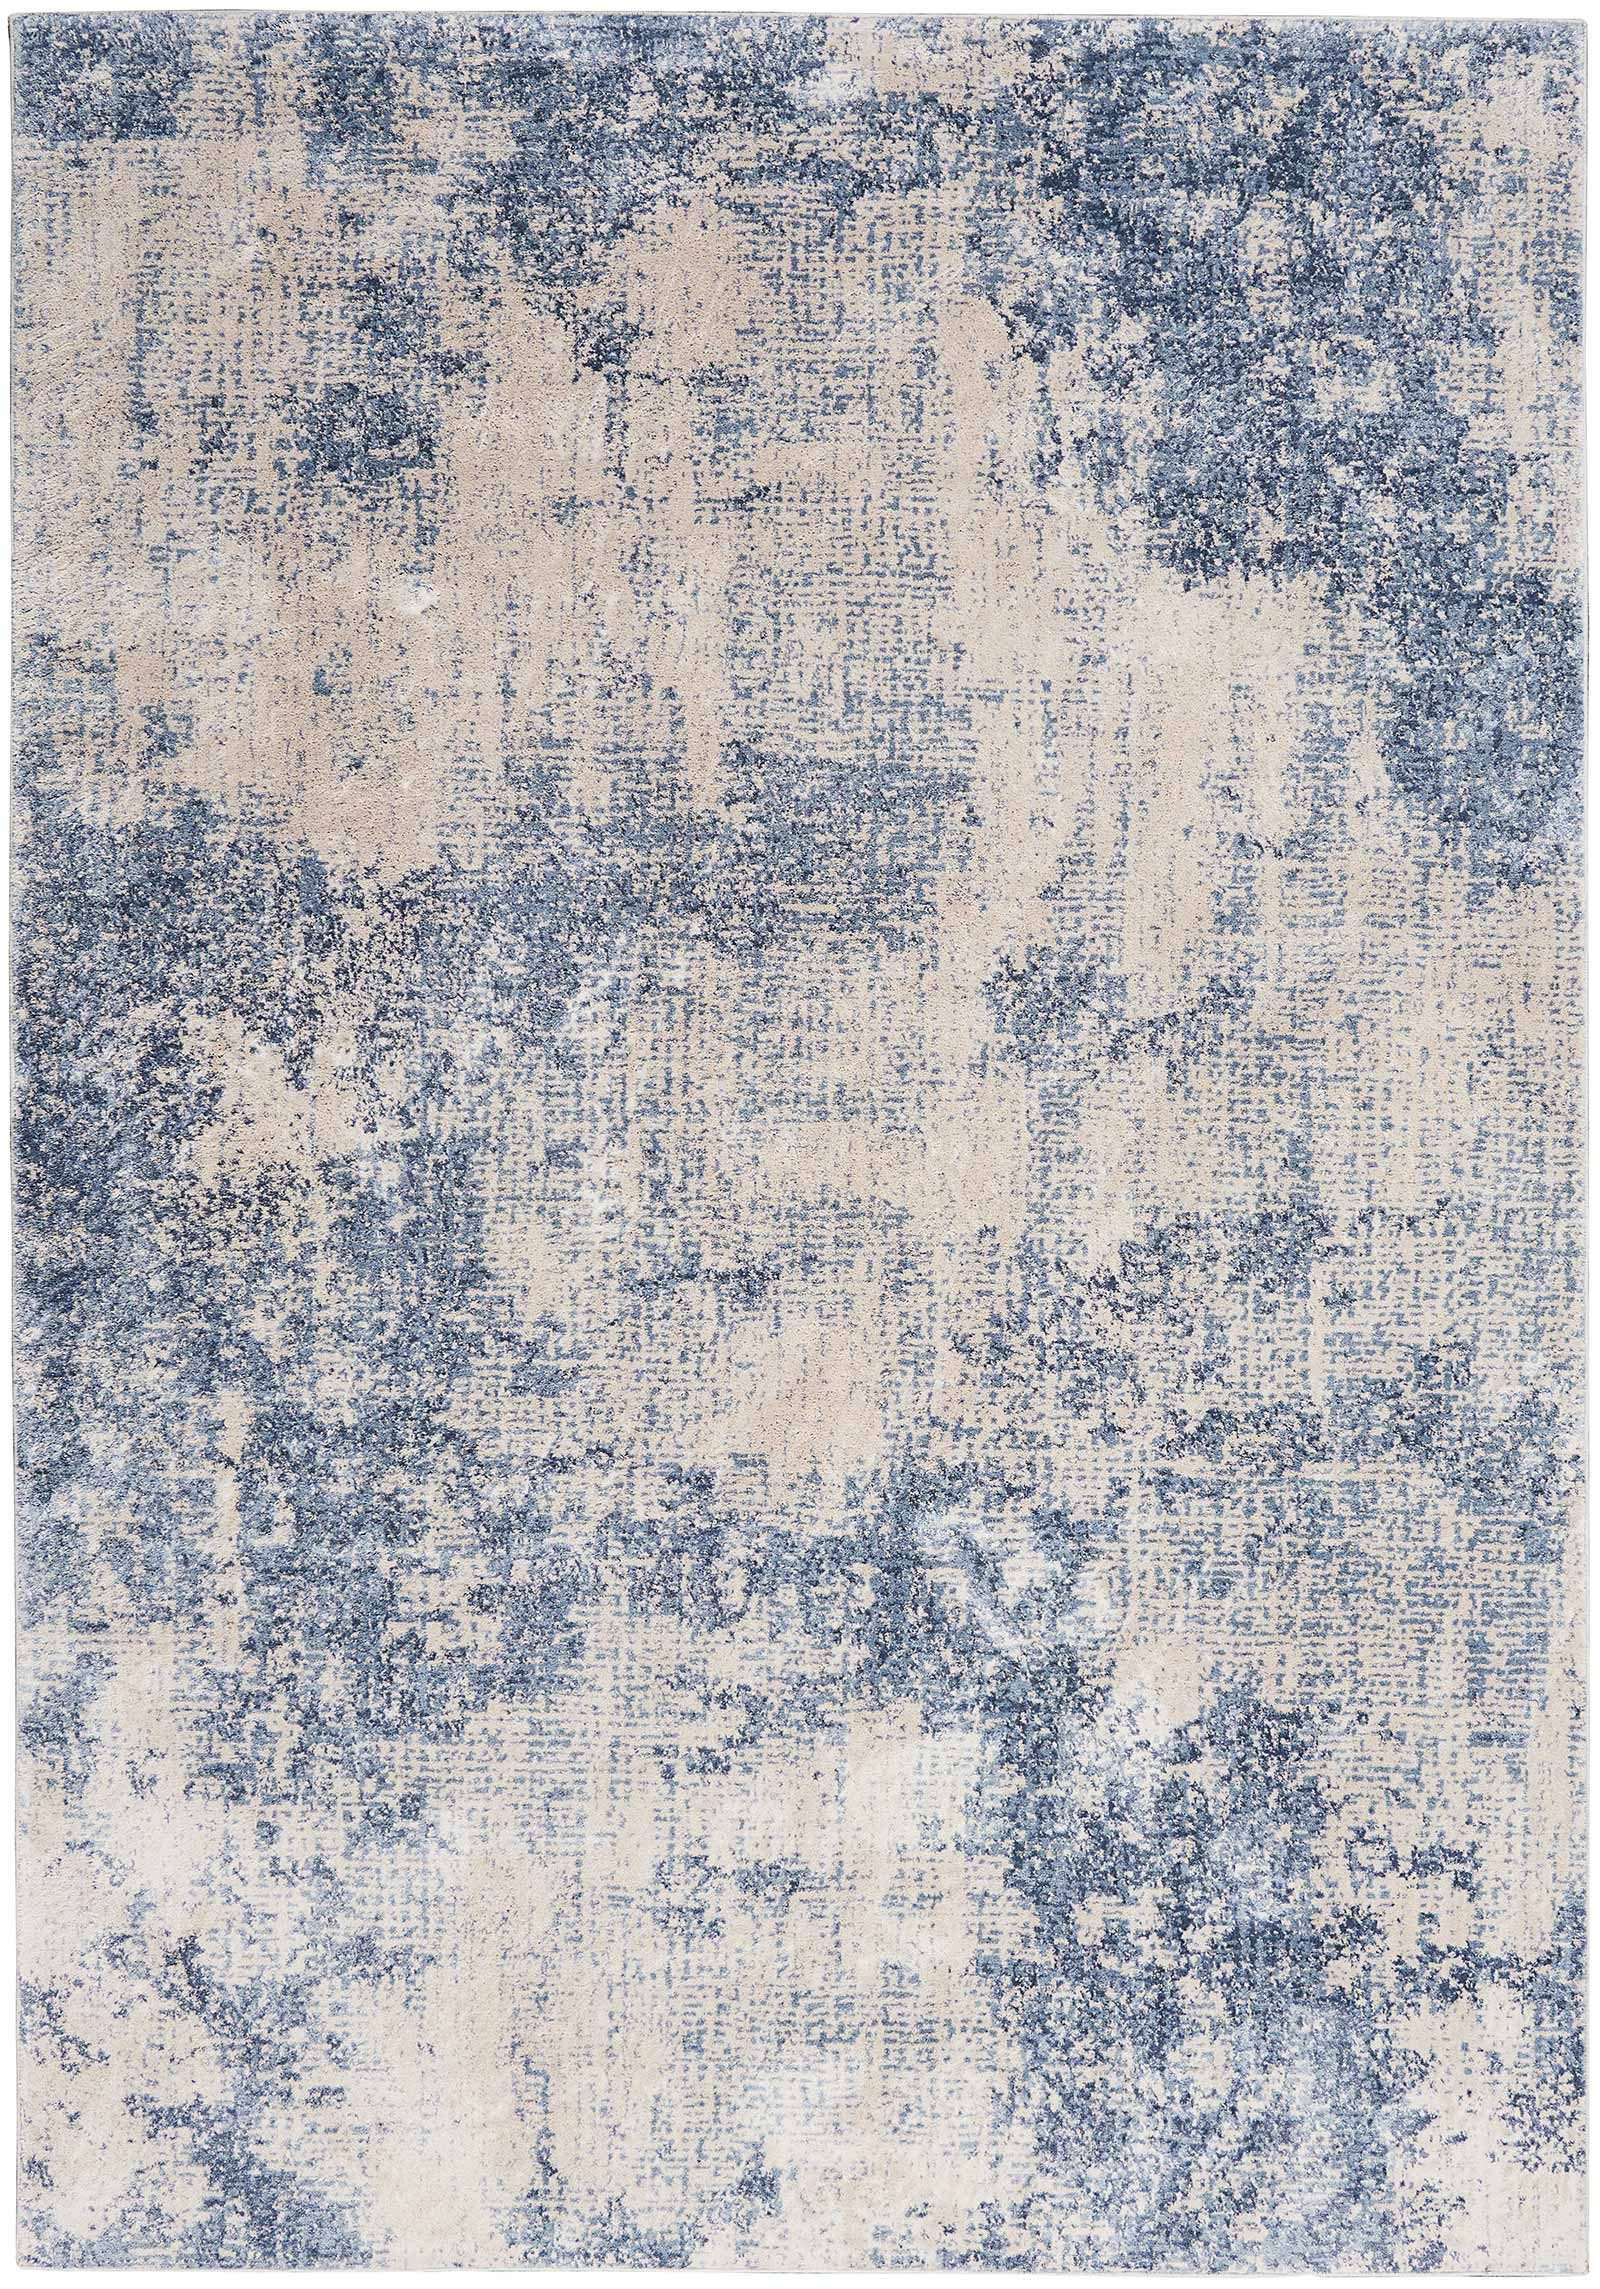 Nourison rug Silky Textures SLY01 IVORY BLUE 5x7 099446709684 flat C